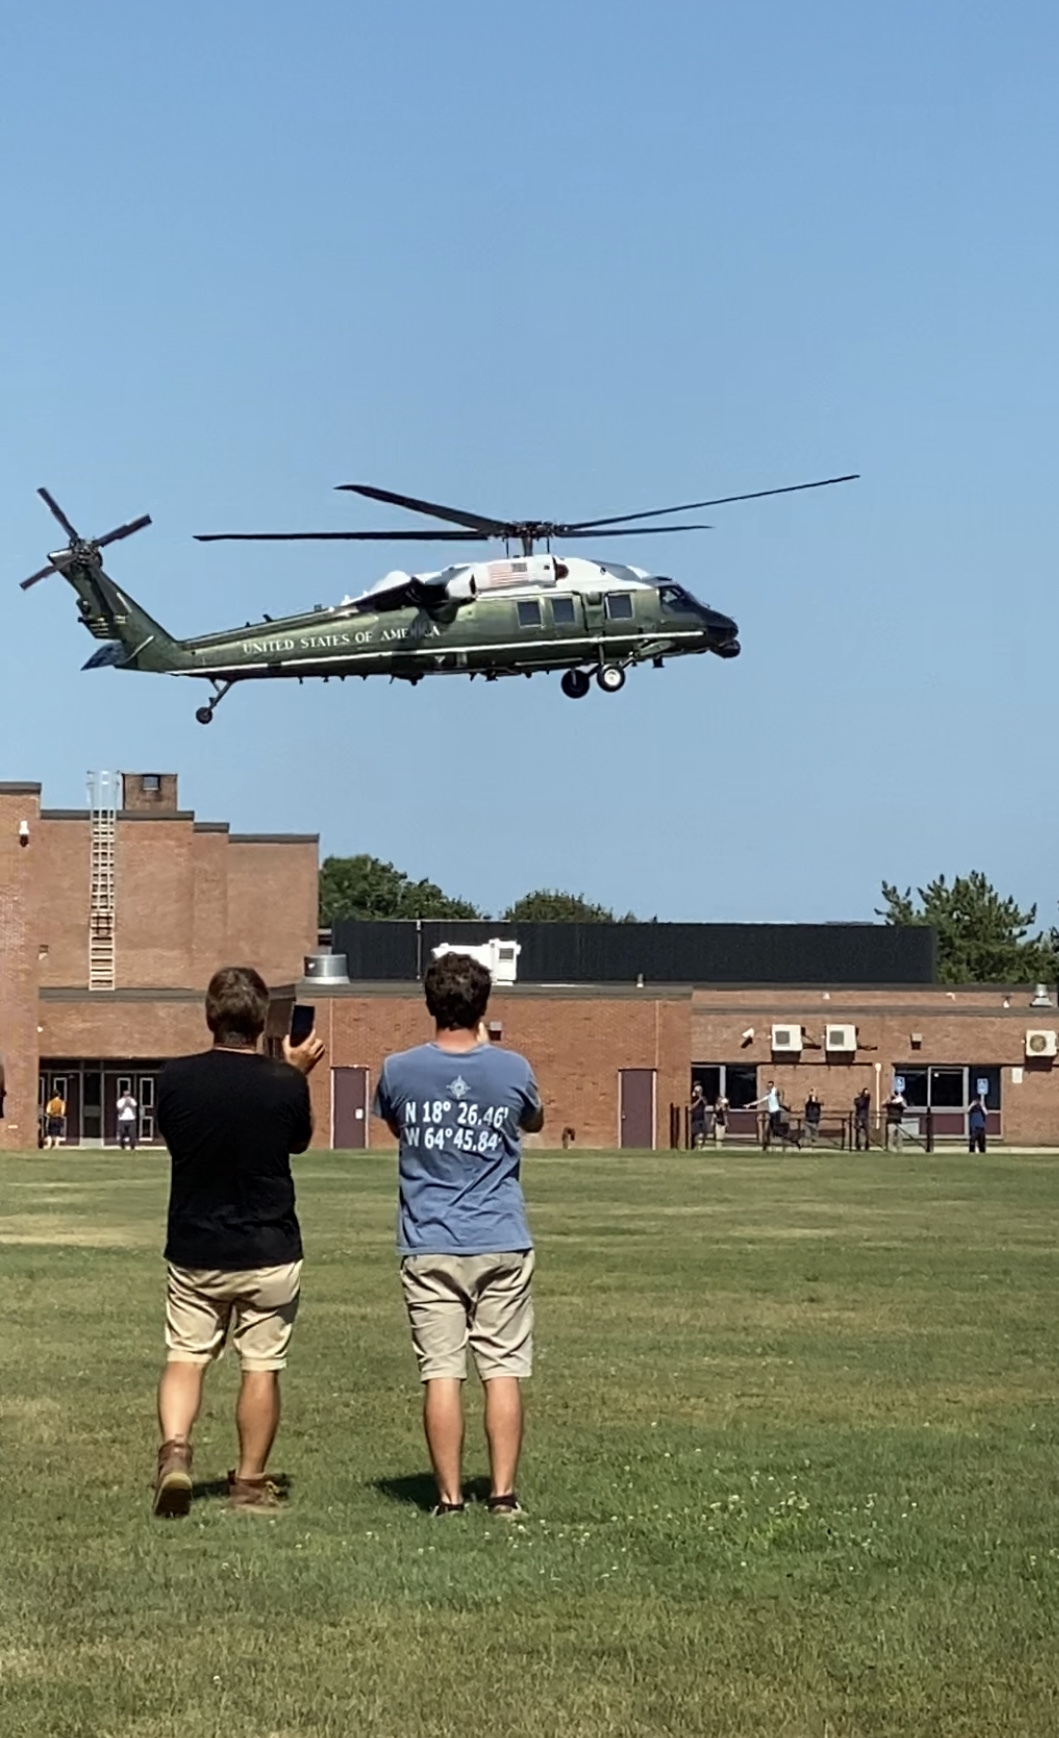 The helicopter that is known as Marine One when the president is aboard, lands at Southampton High School on Wednesday afternoon.